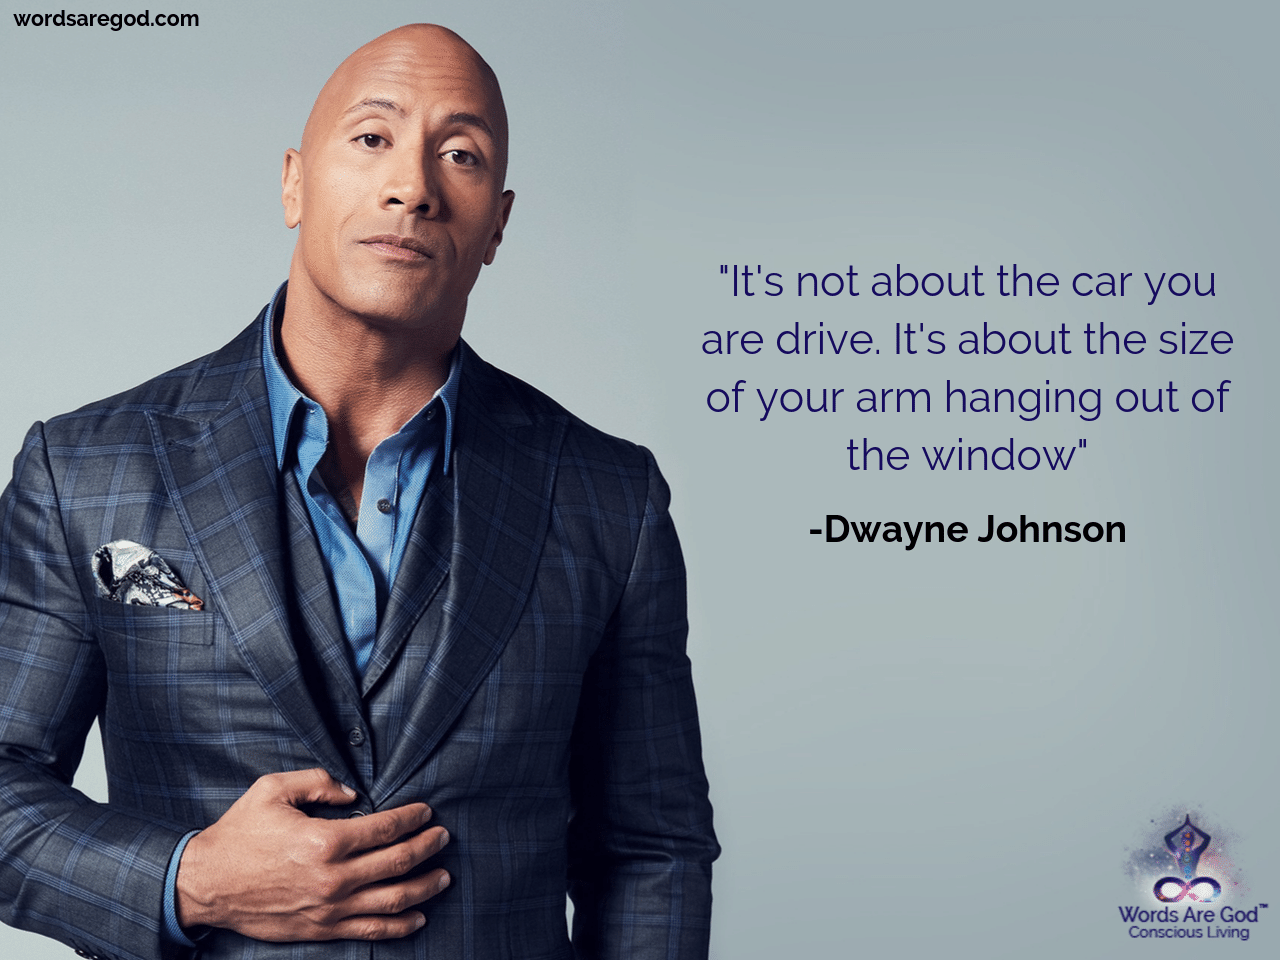 Dwayne Johnson Inspirational Quotes by Dwayne Johnson